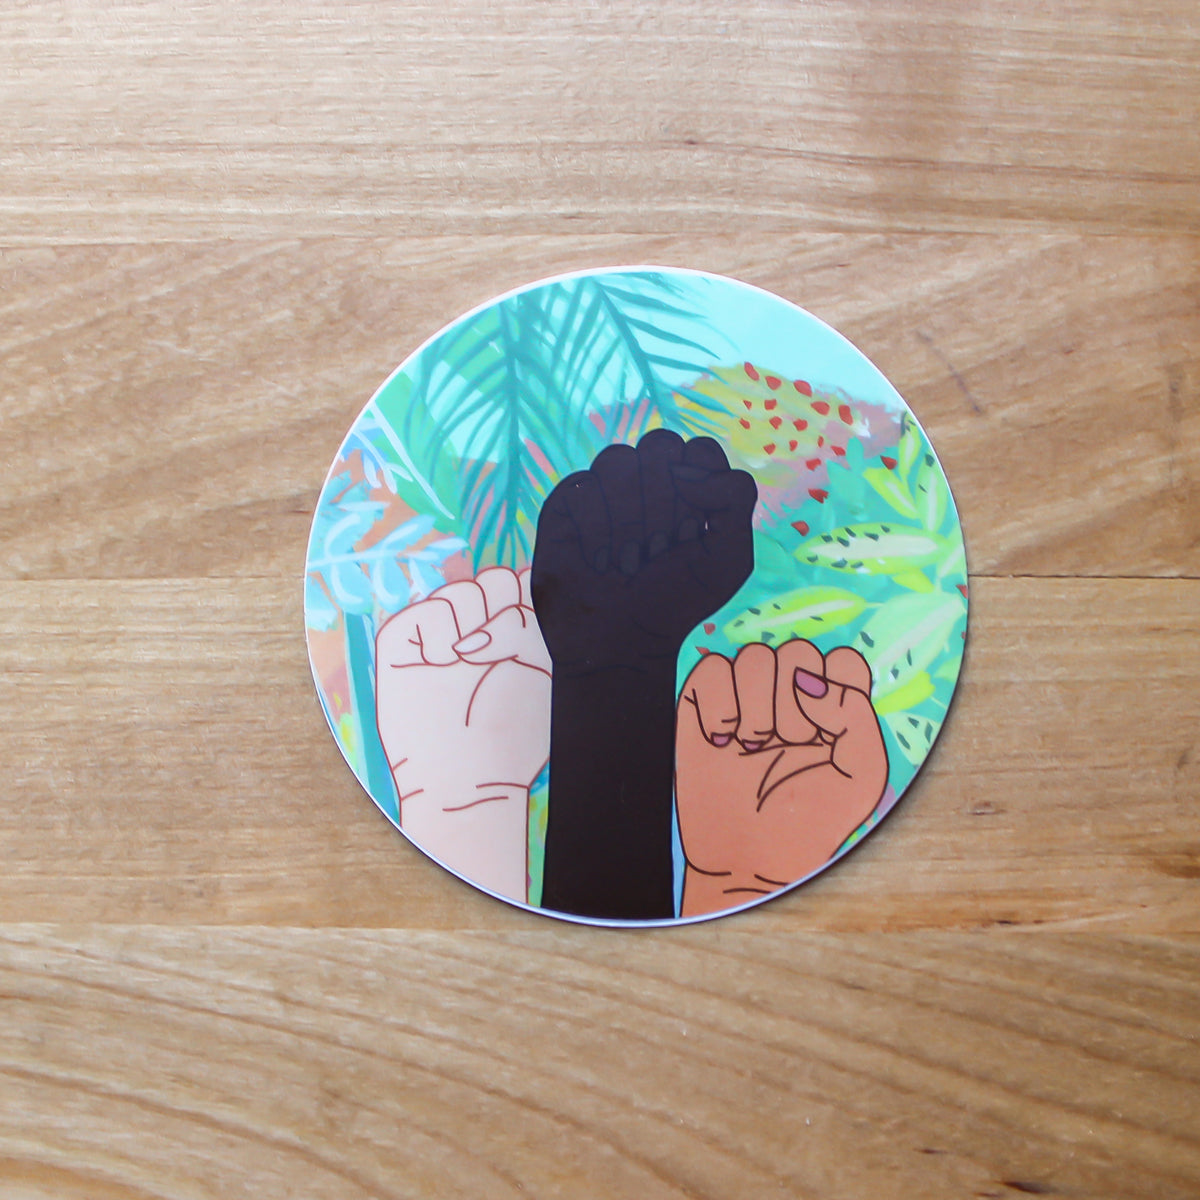 Sticker Support Equal Rights for all women - Christmas Gifts Under 5 - Fists - Feminist